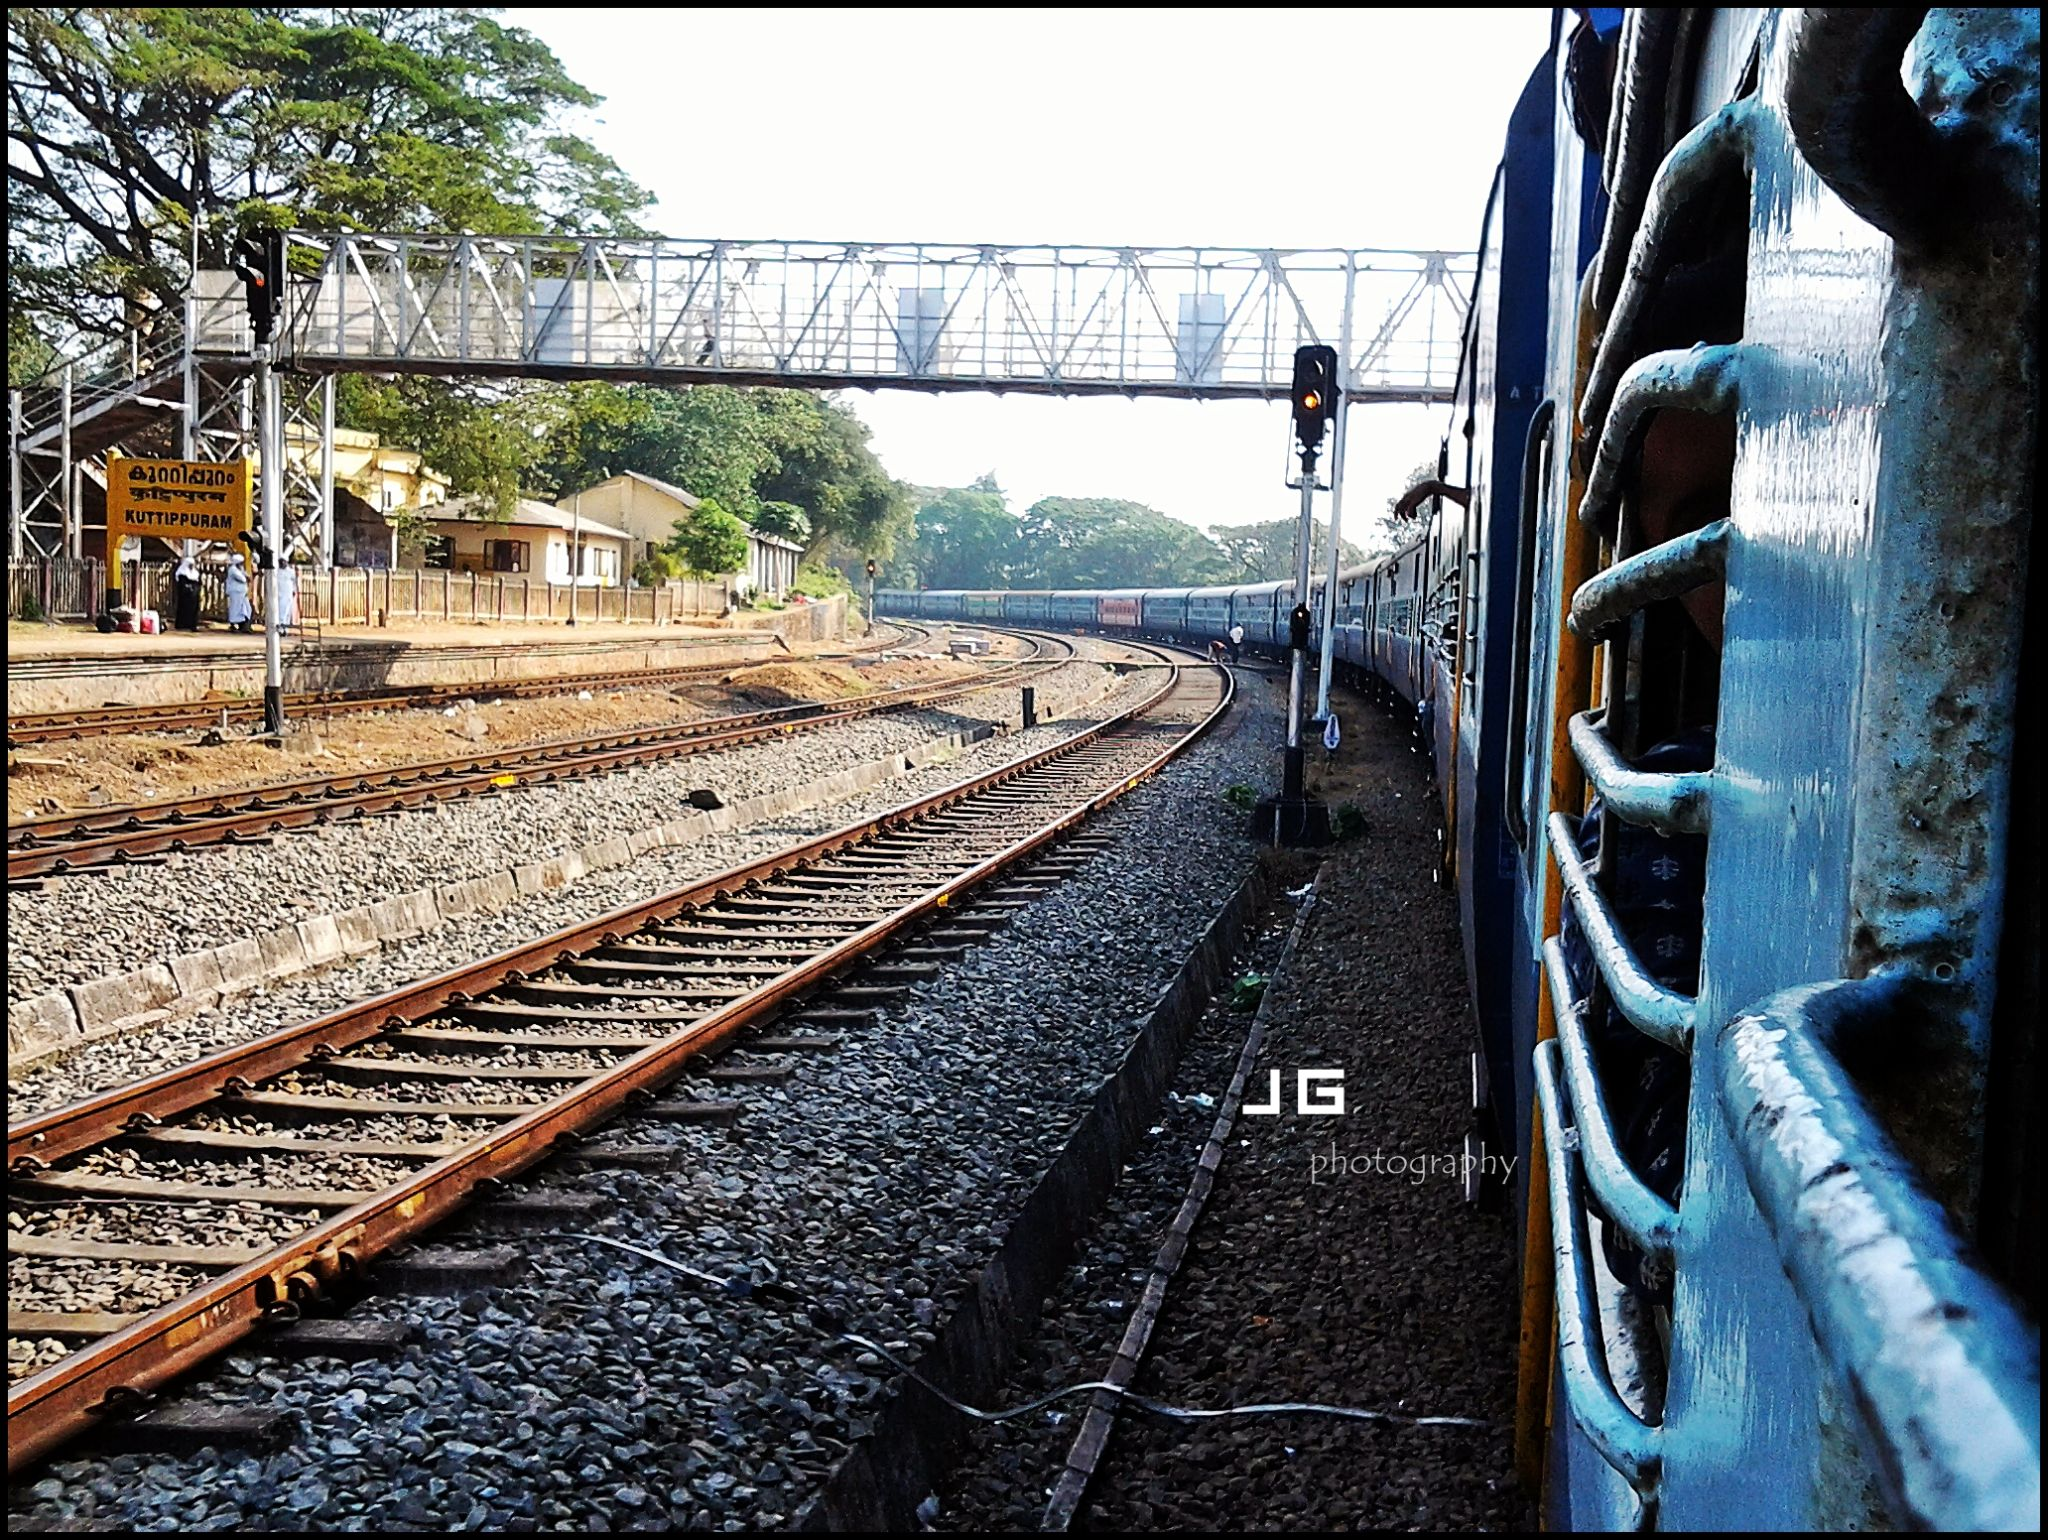 Happy Journey- Indian Railway by Jg Mobile Photography